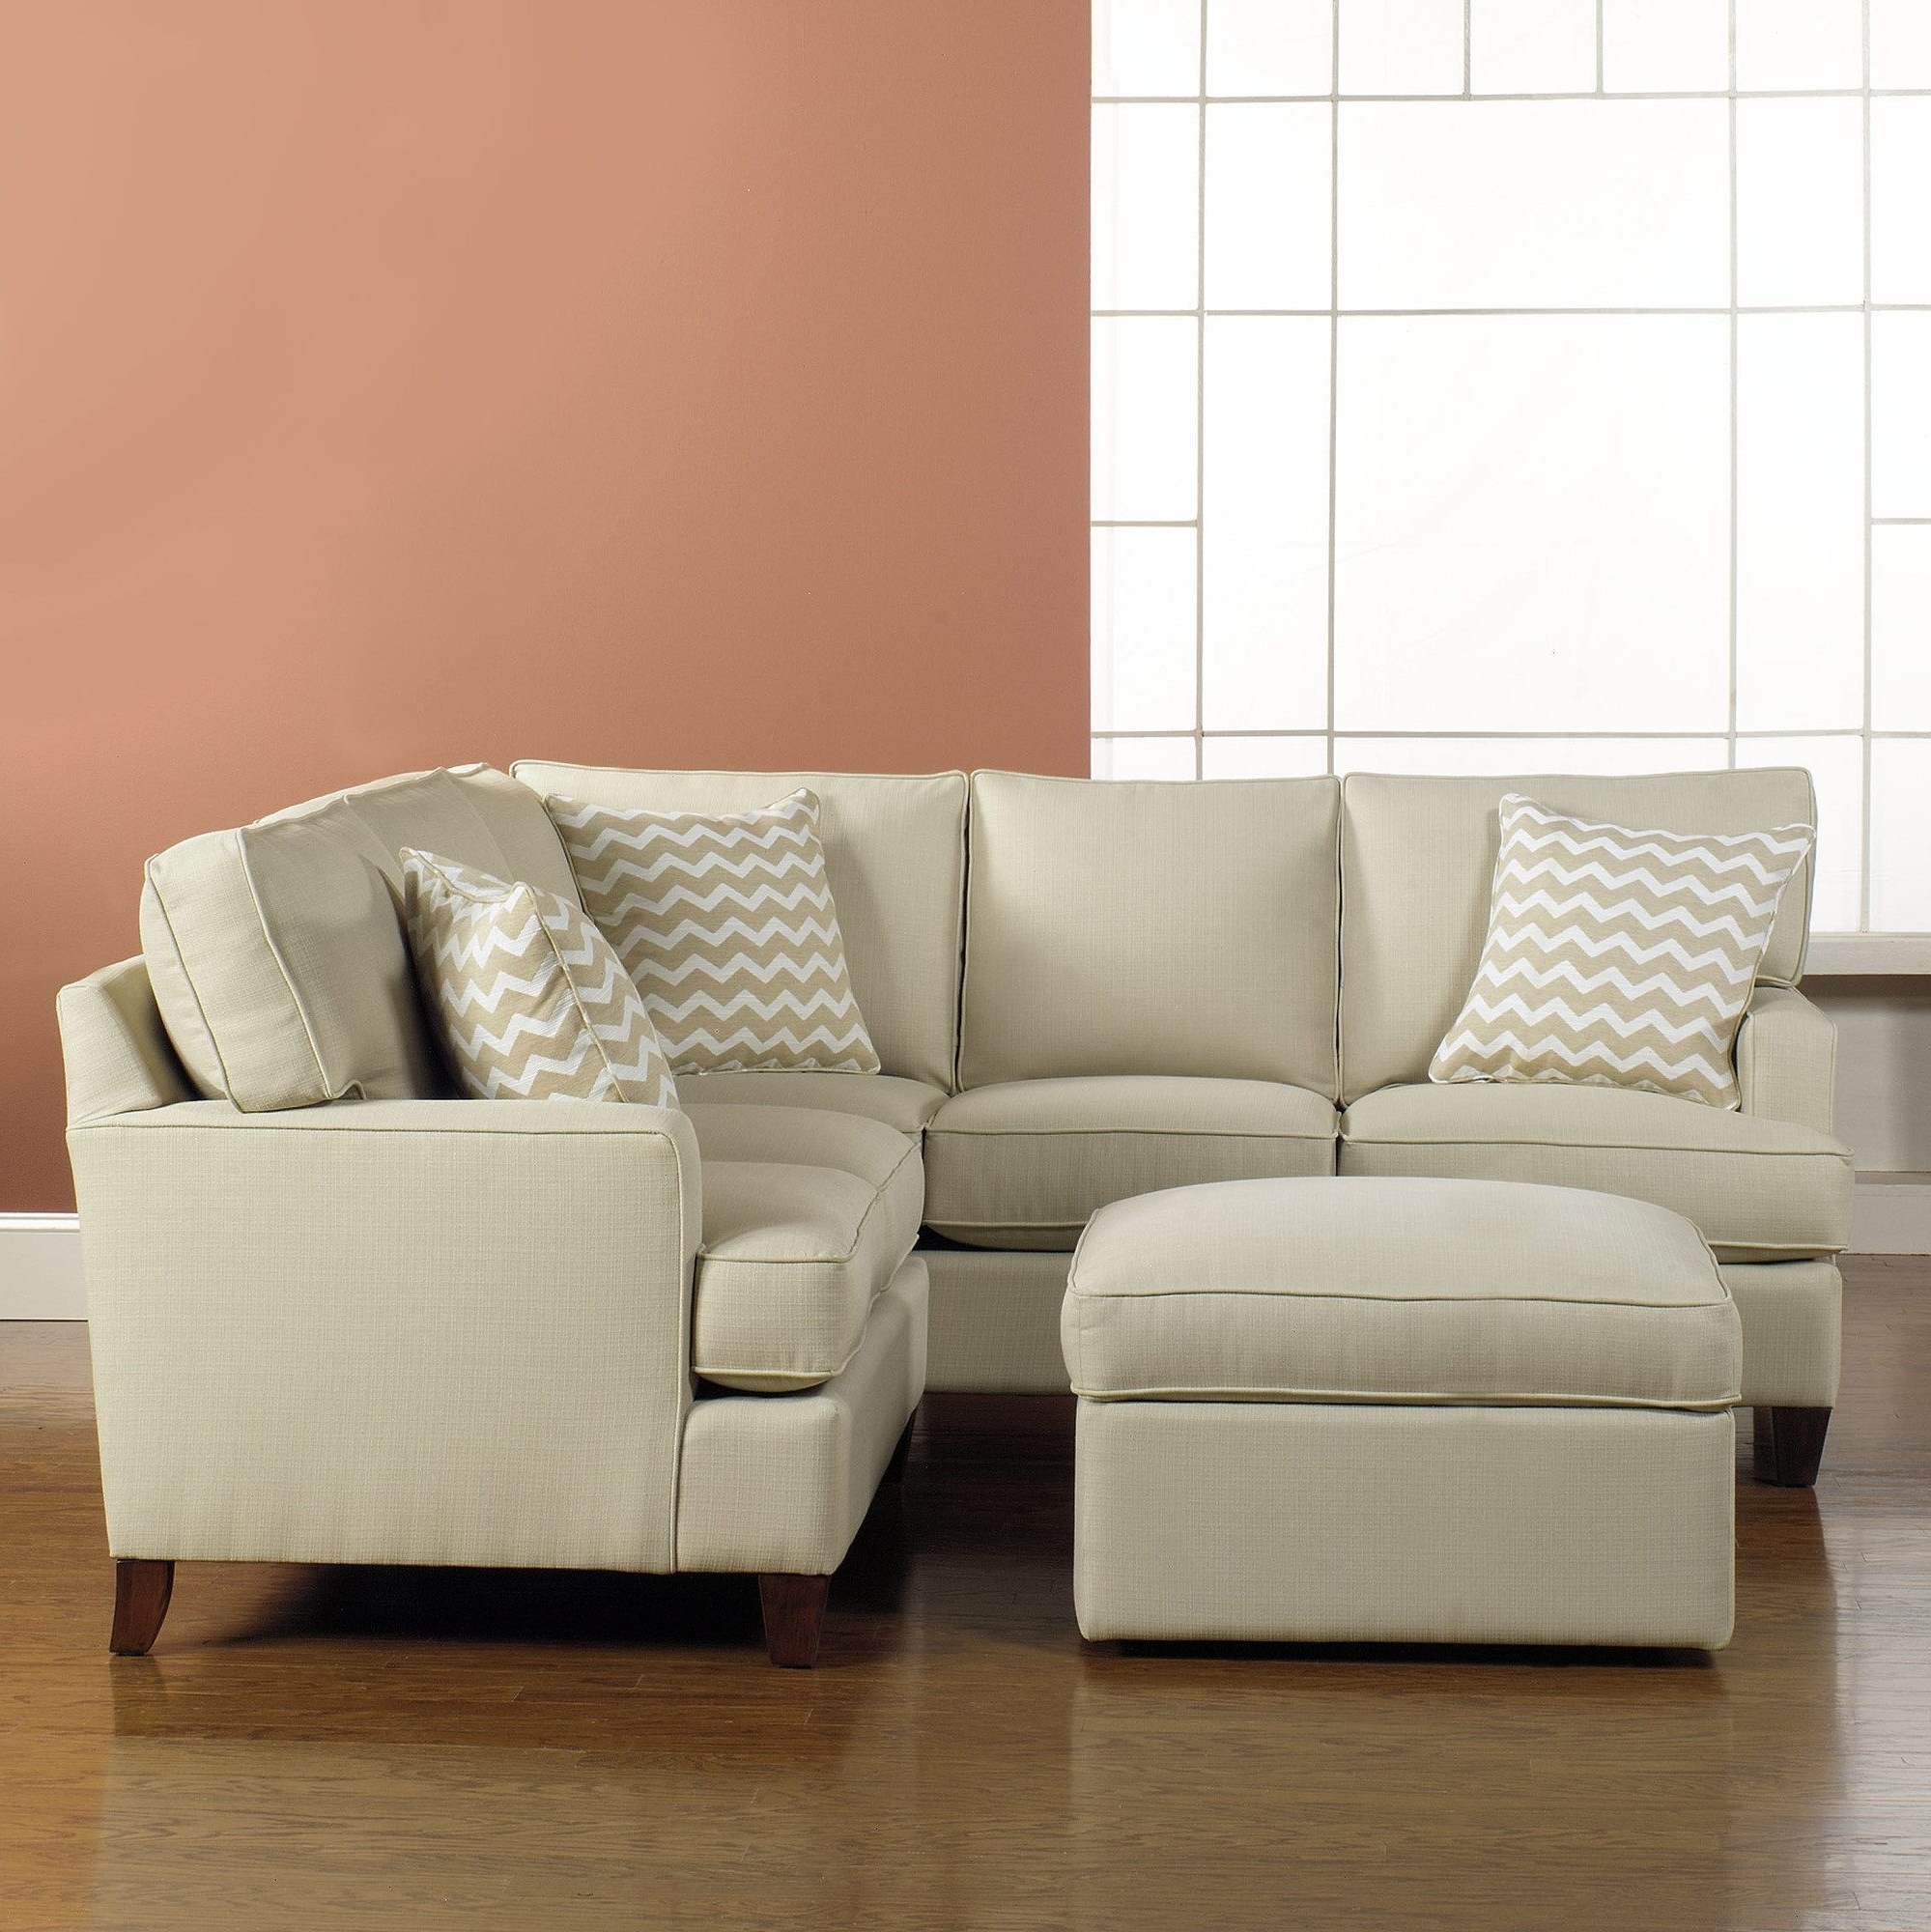 Widely Used Sectional Sofas For Small Places Within Sofa : Small 2 Piece Sectional Sofa Comfy Sectionals For Small (View 2 of 20)